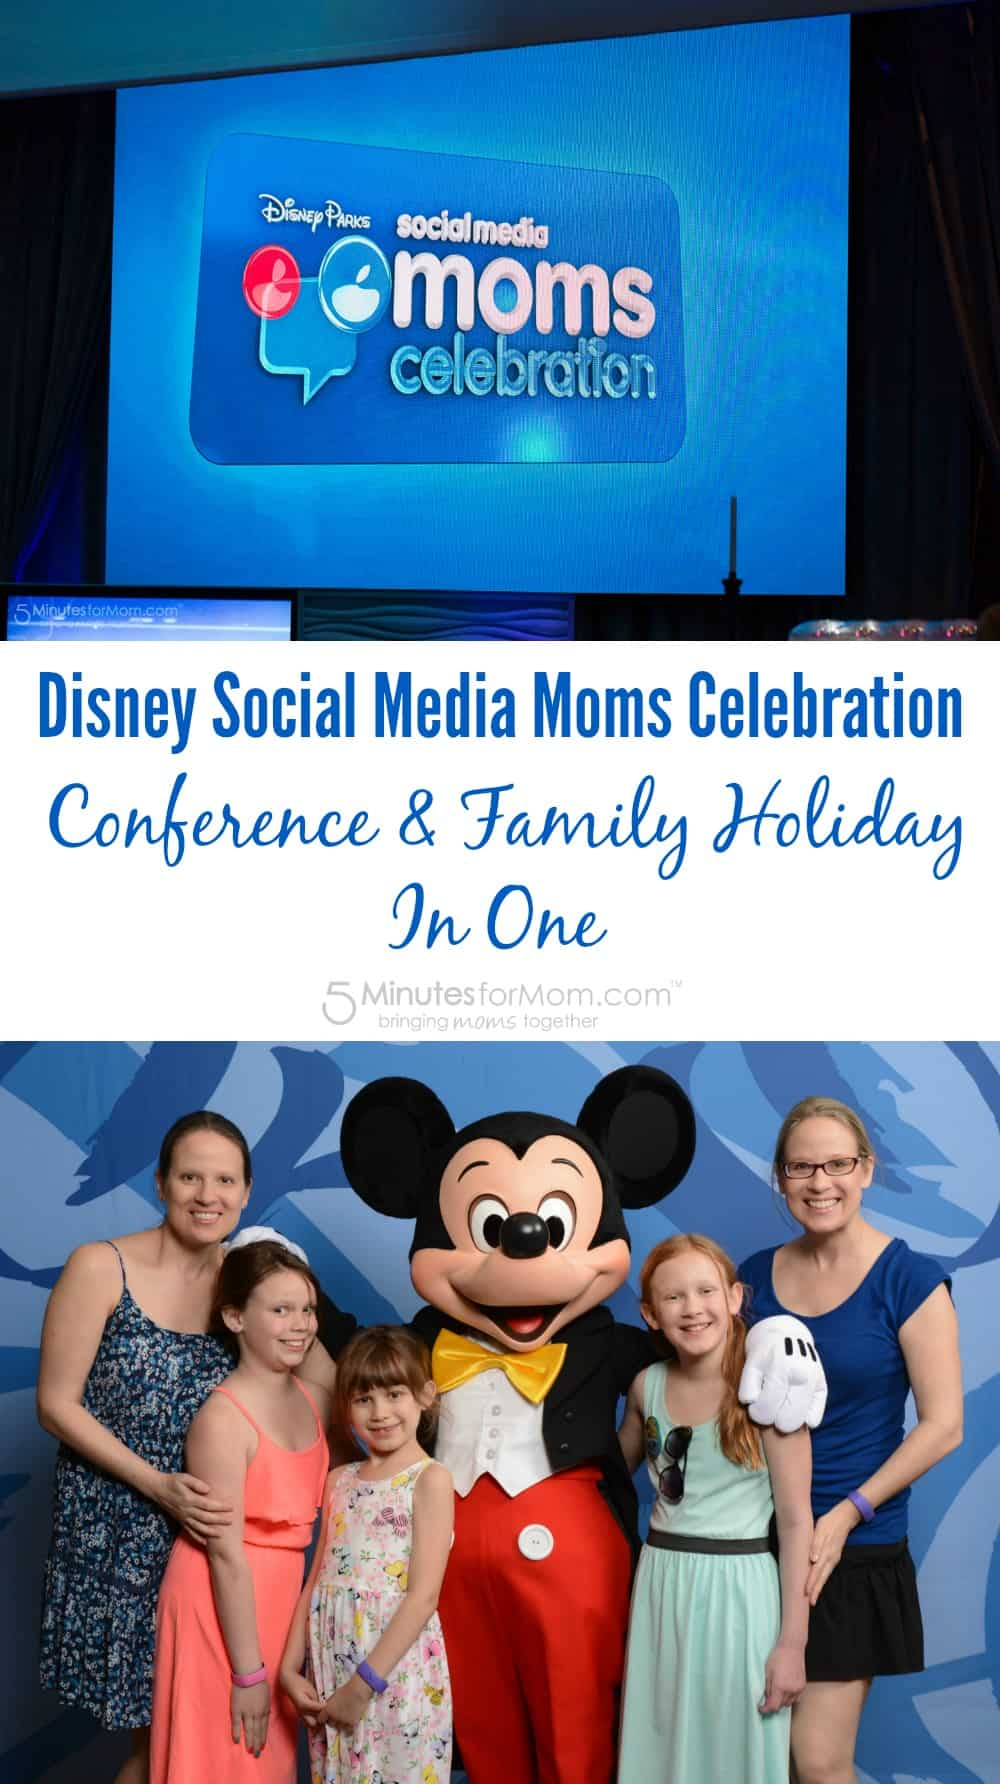 Disney Social Media Moms Celebration - Conference and Family Holiday